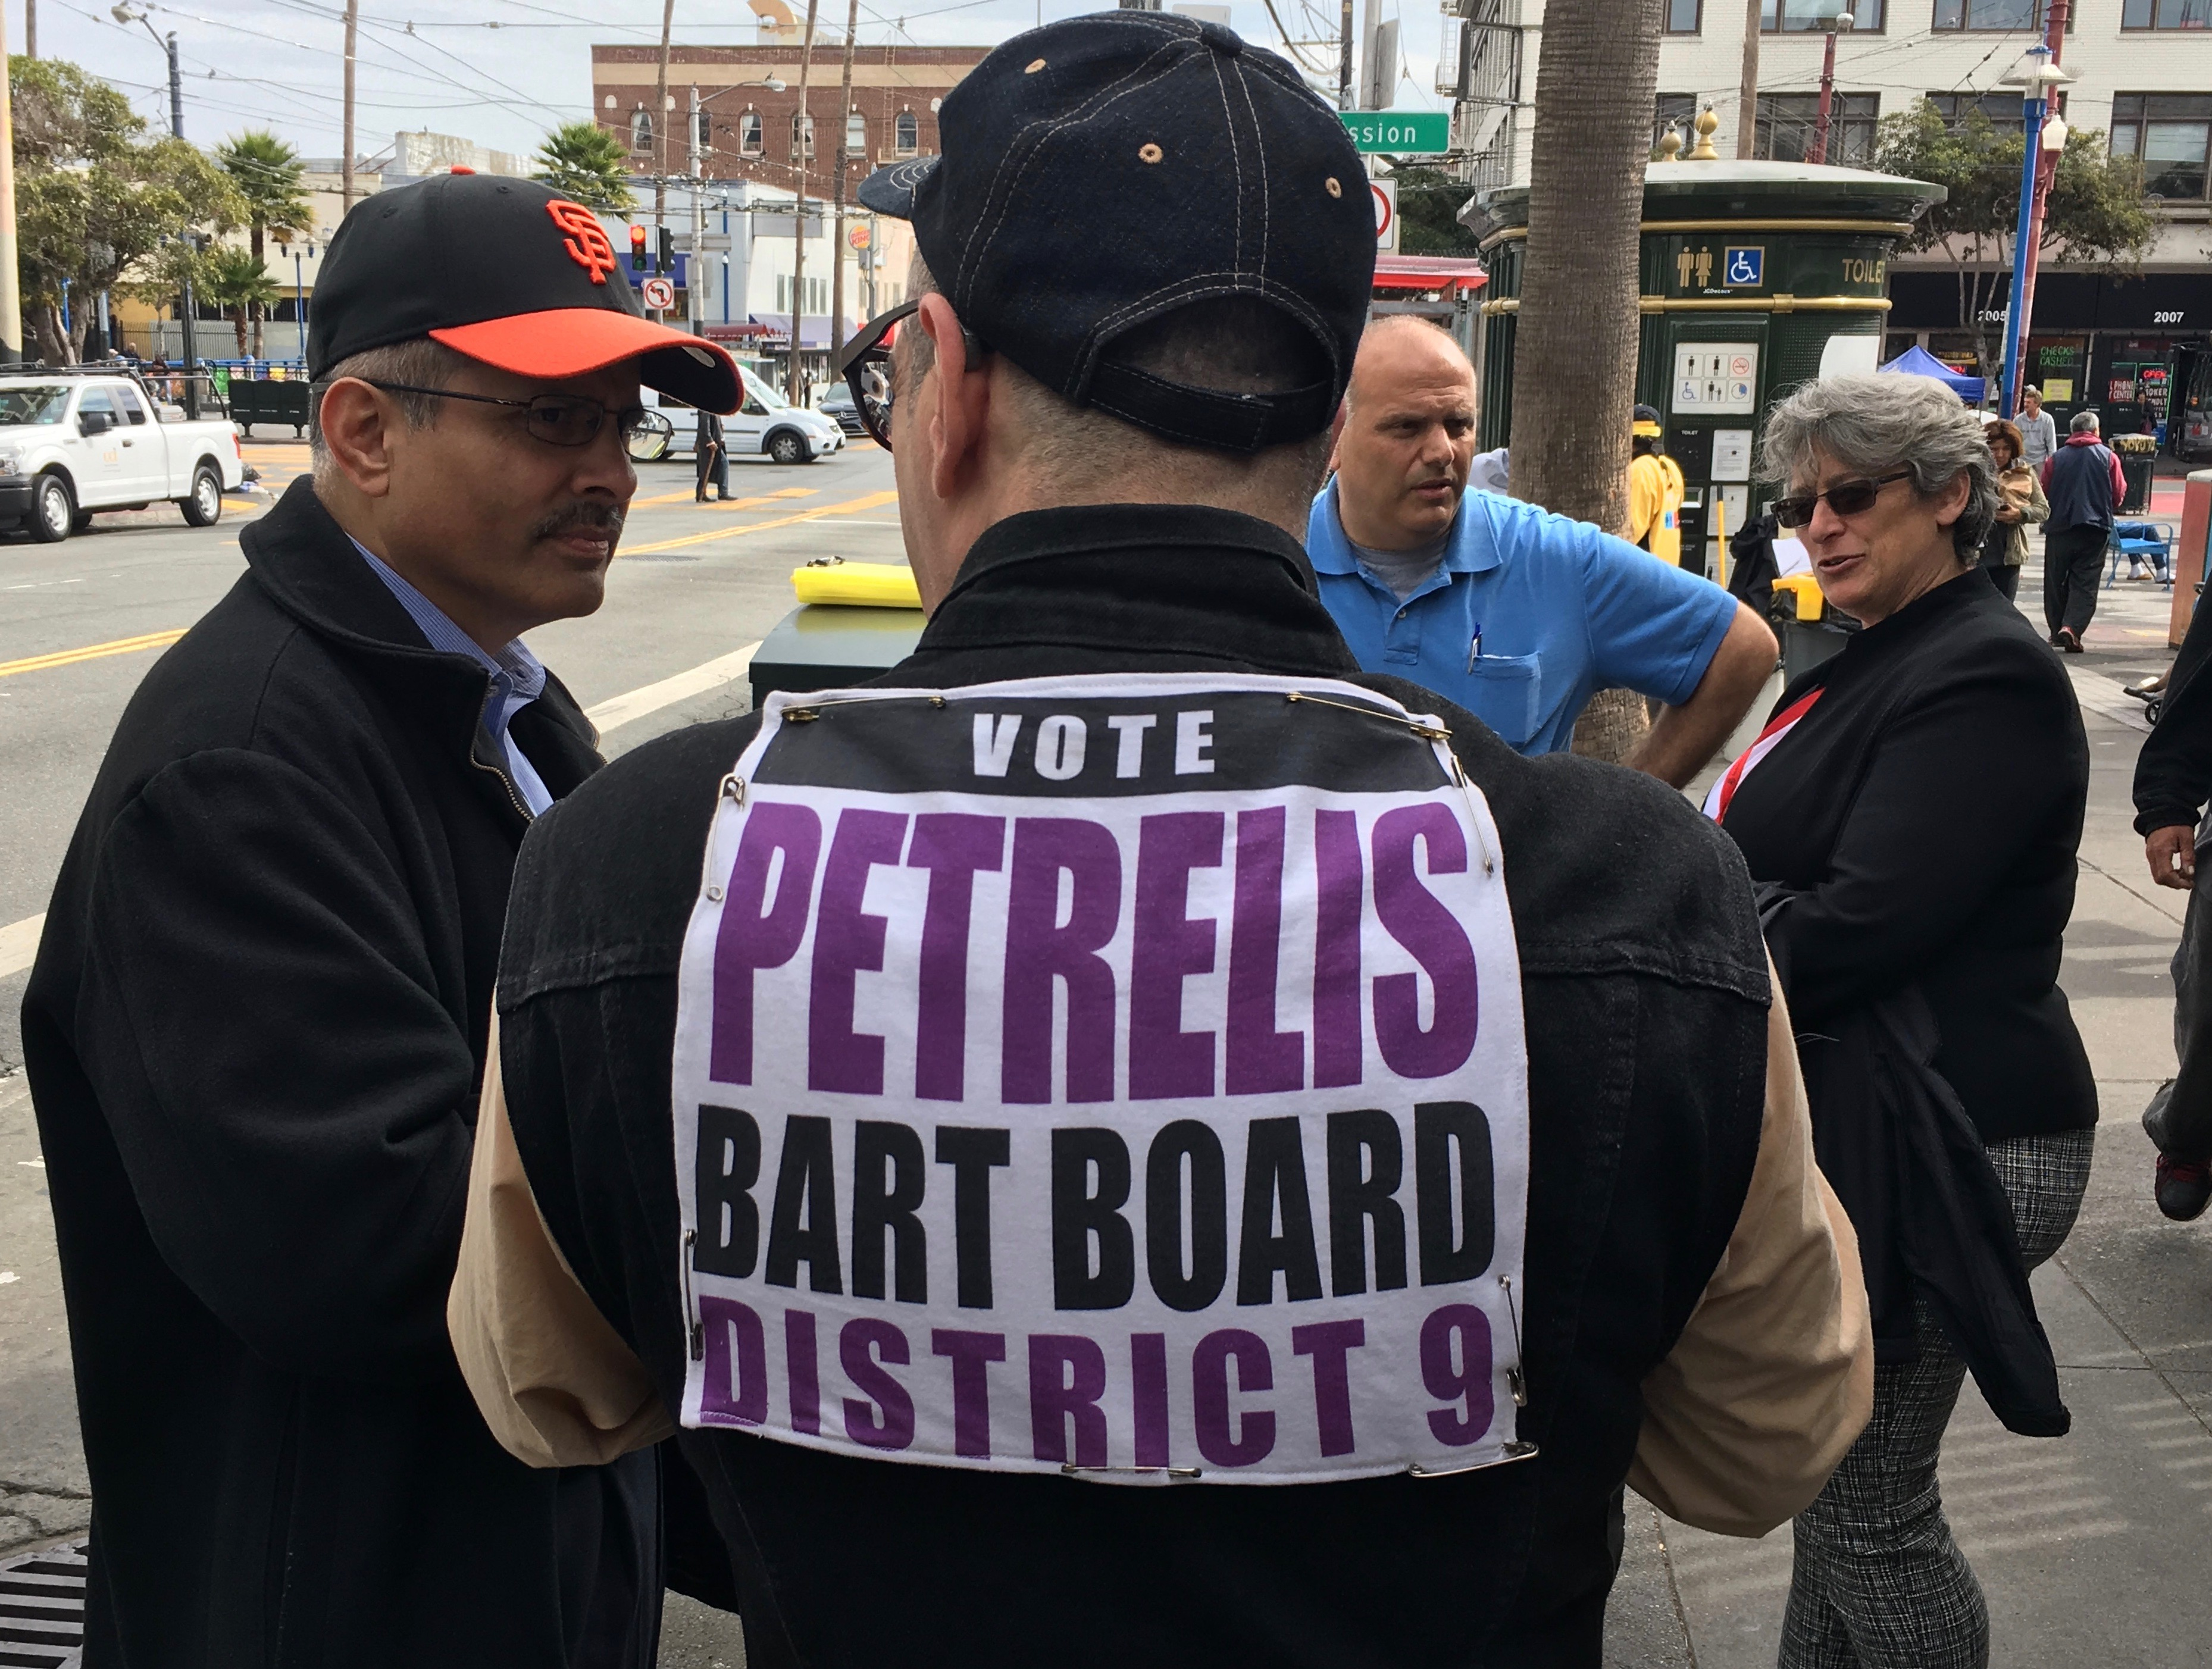 Michael Petrelist at the walking tour of the 16th Street Bart Station on October 13. Photo by Joe Rivano Barros.